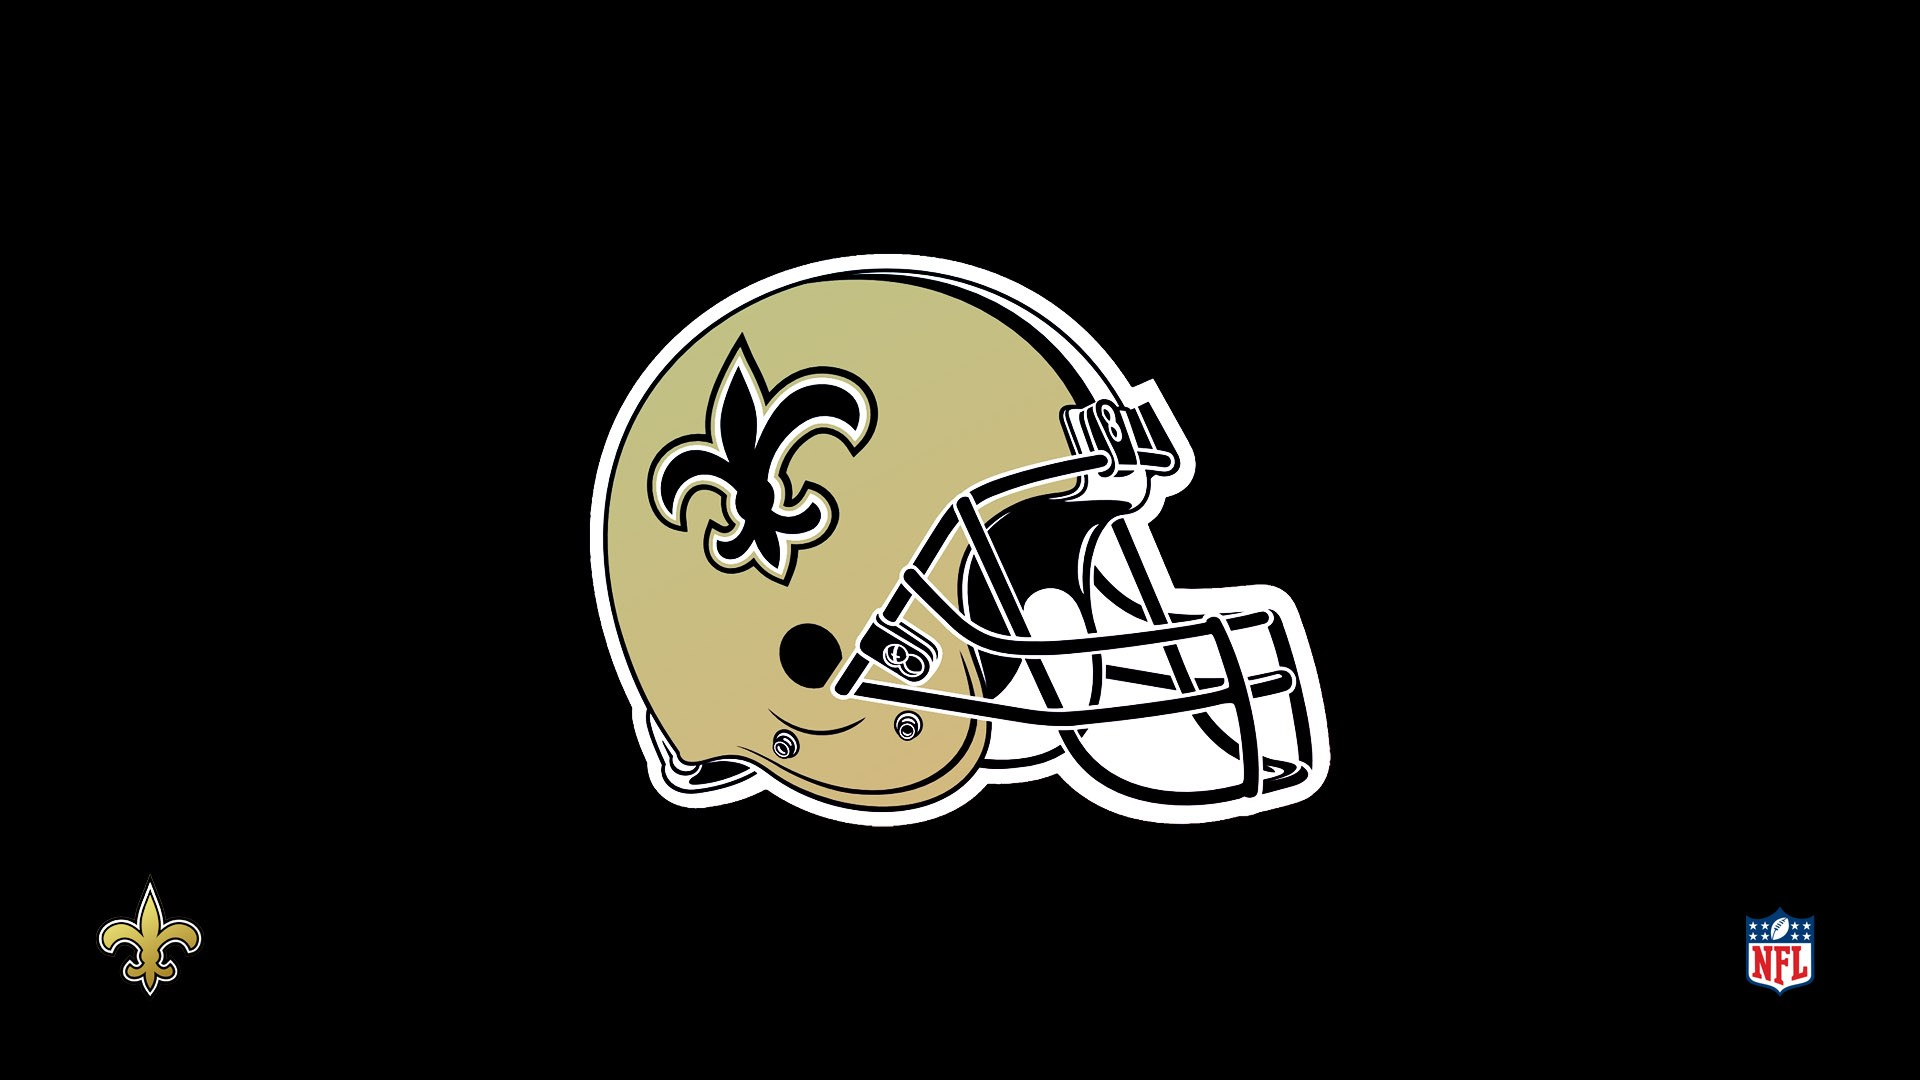 10 HD <b>New Orleans Saints Wallpapers</b> - HDWallSource.com